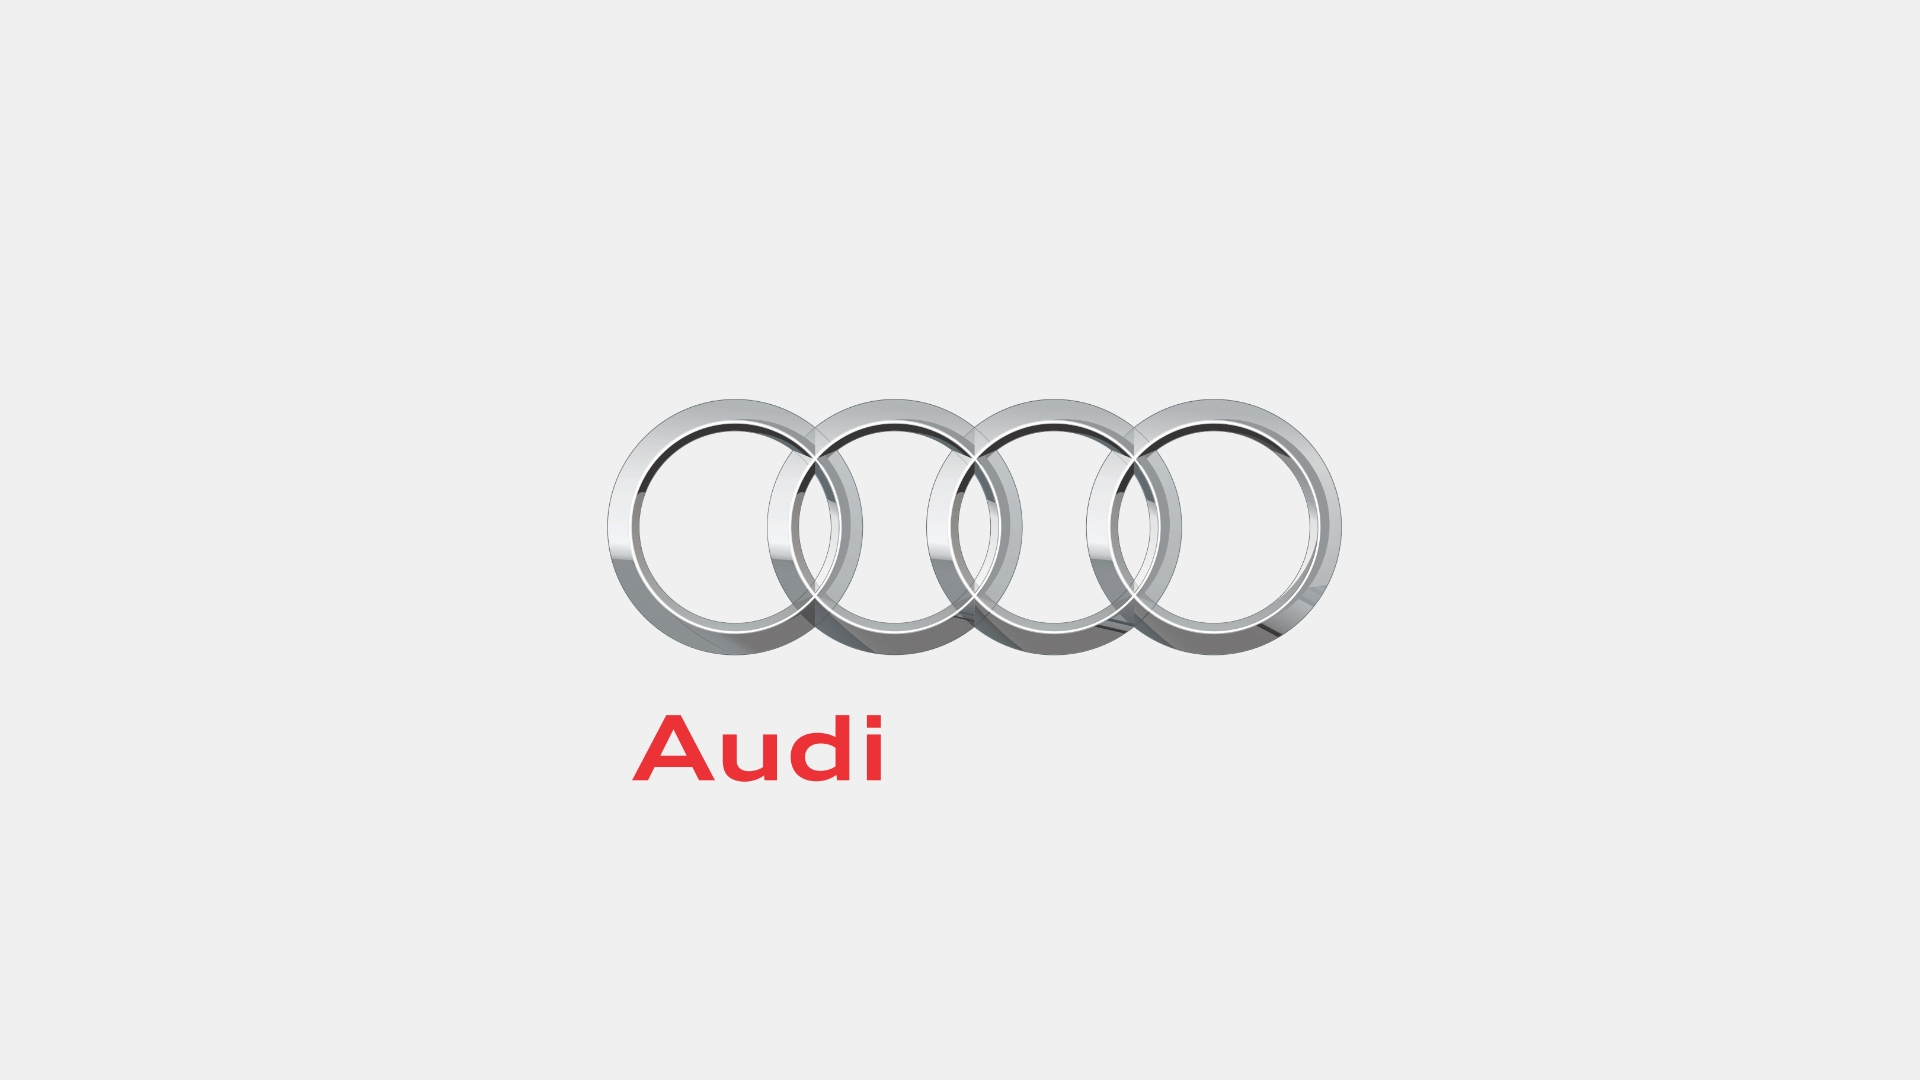 Audi Logo Wallpaper Hd